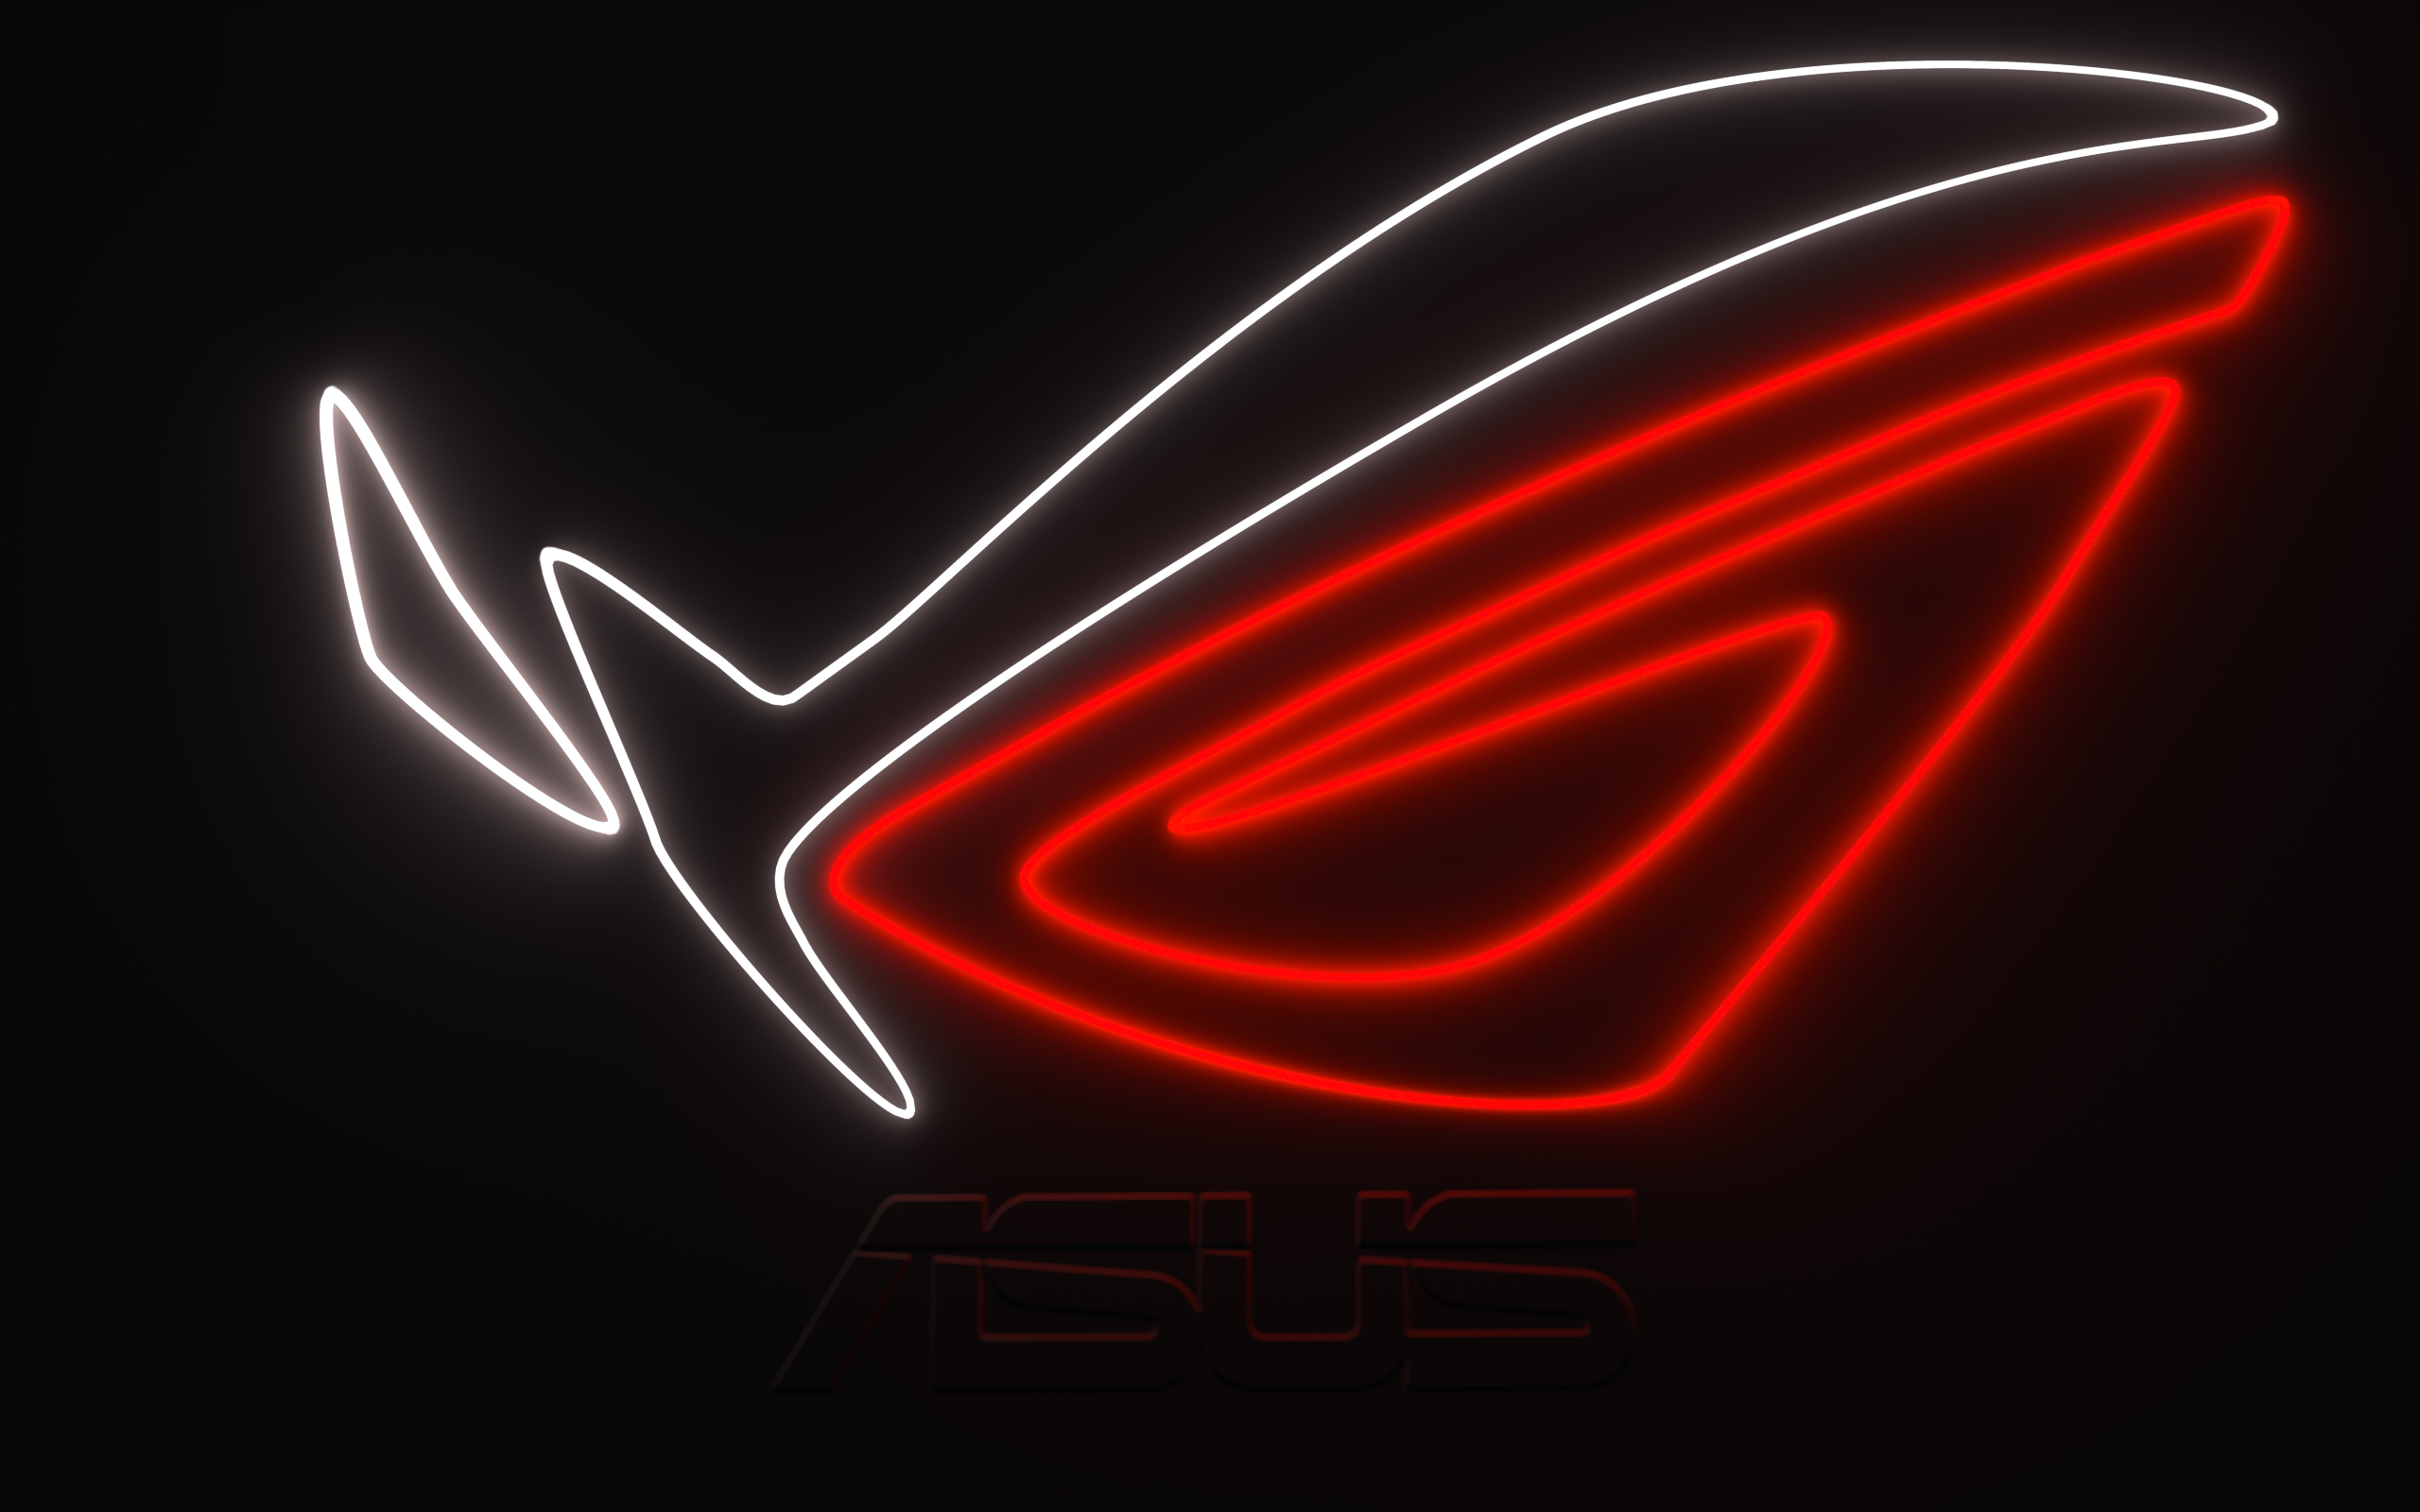 Rog Neon Logo 5k Hd Computer 4k Wallpapers Images: 2013 ROG Wallpaper Competition: Vote For Your Favorite